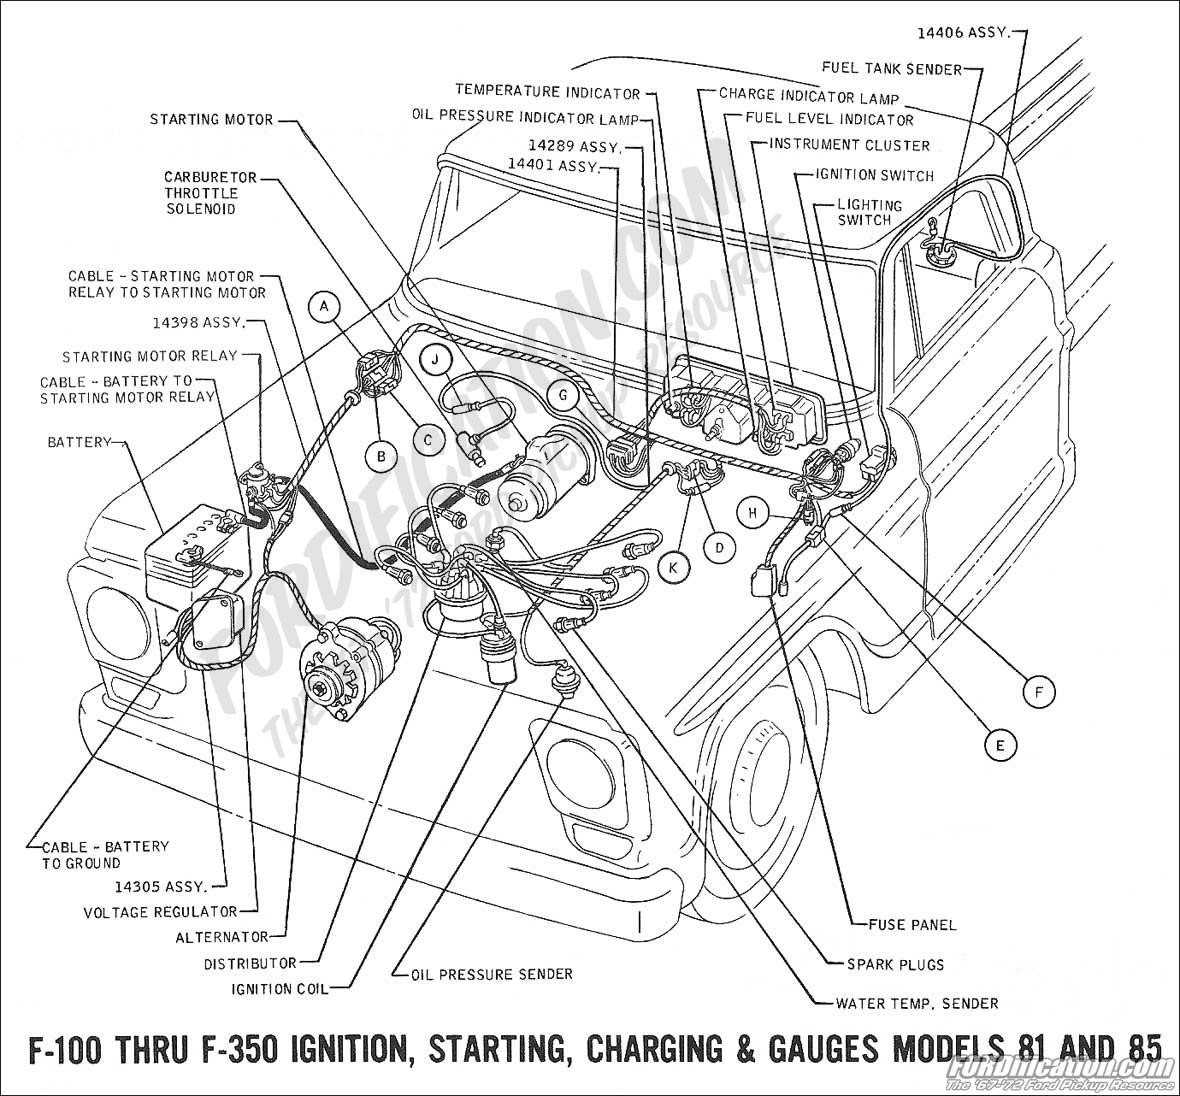 wiring 1969charging 69 f100 wiring diagram 1973 ford f100 wiring diagram \u2022 wiring 1966 ford truck wiring diagram at aneh.co